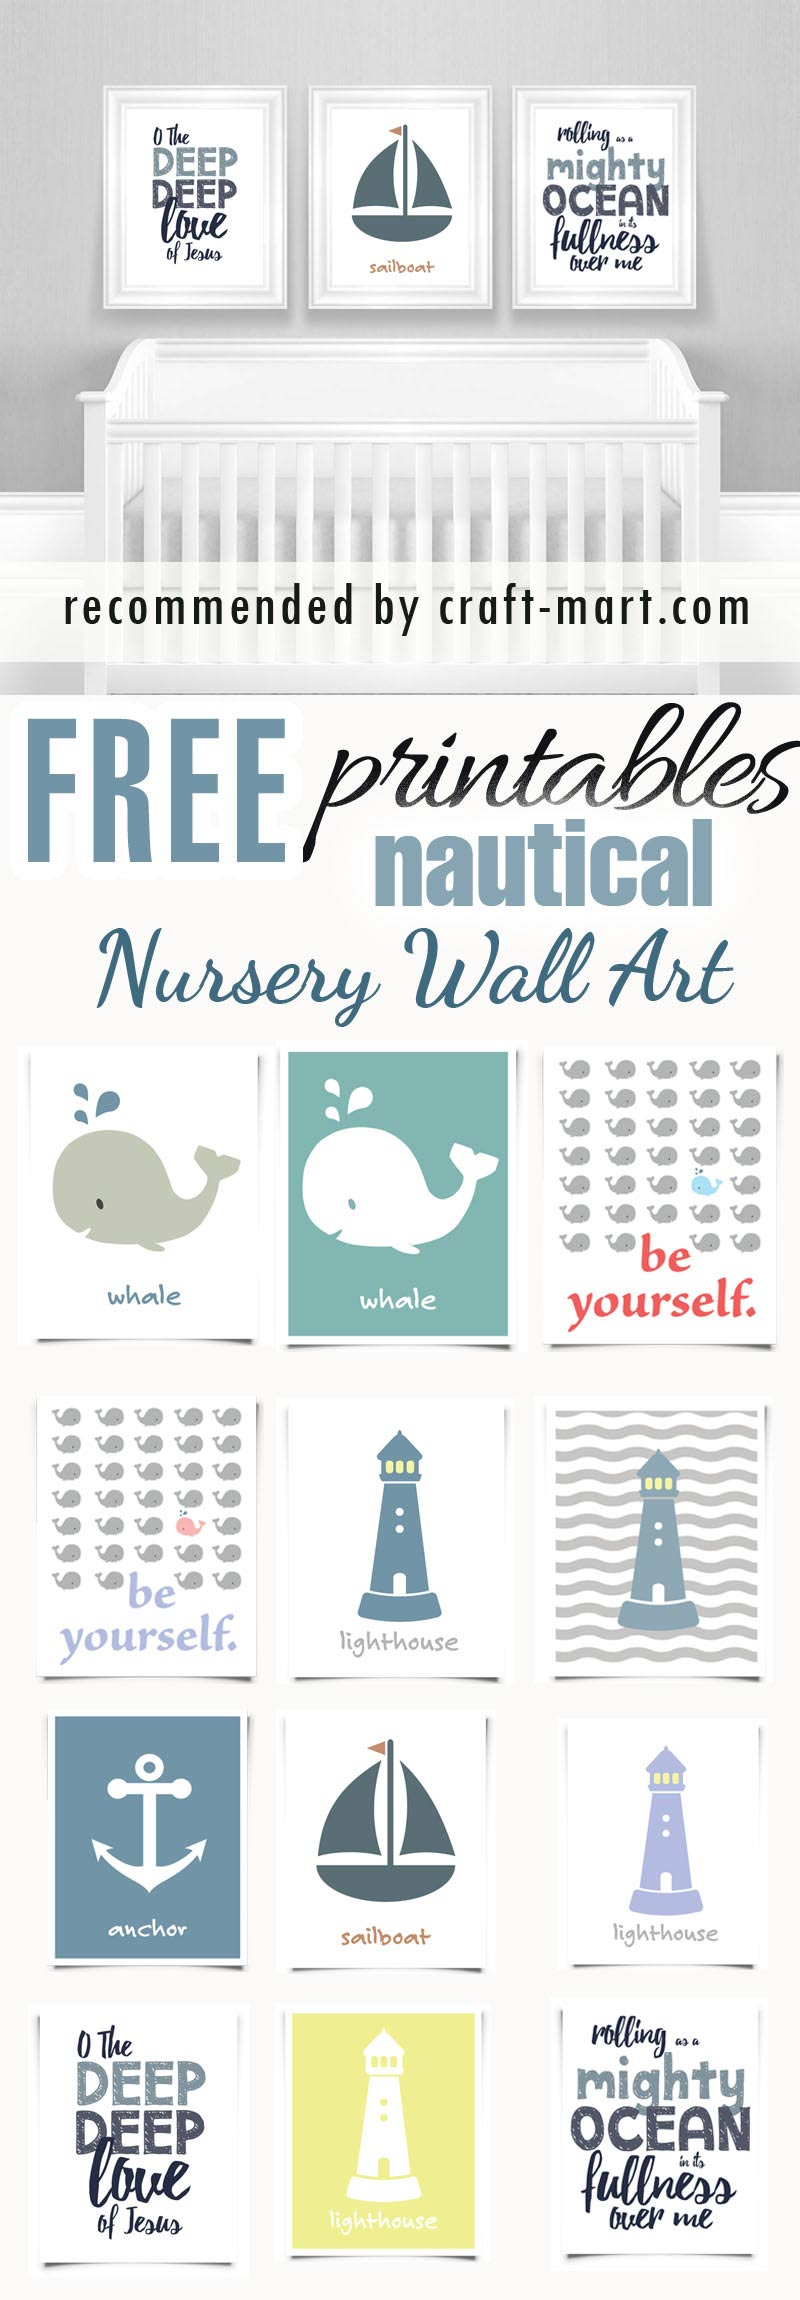 photograph regarding Free Printable Nursery Art named 100+ Easiest Free of charge Nursery Printables and Wall Artwork - Craft-Mart